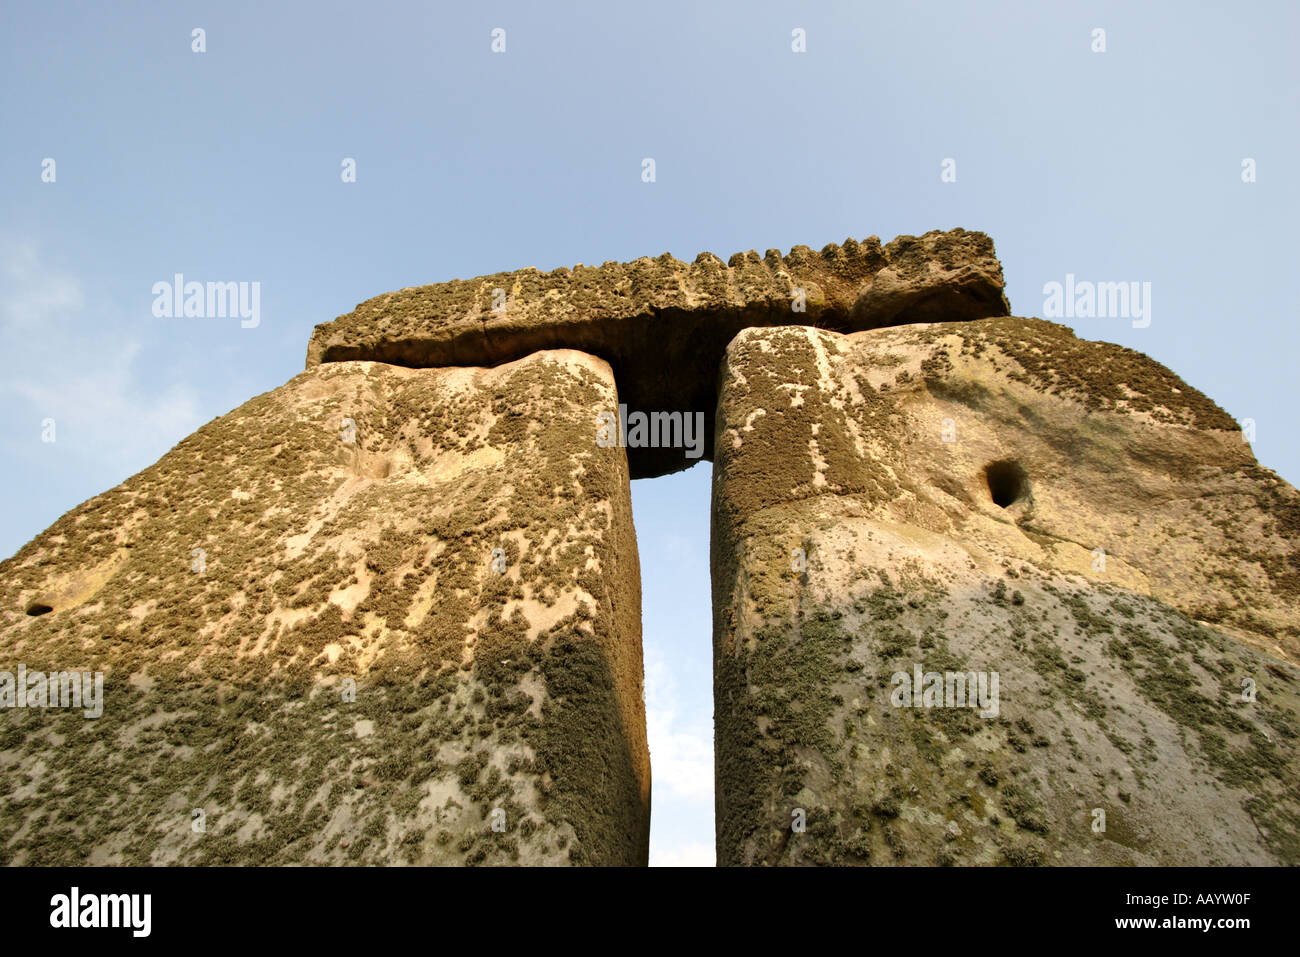 Stonehenge World Heritage Site in the heart of Wiltshire England Stock Photo